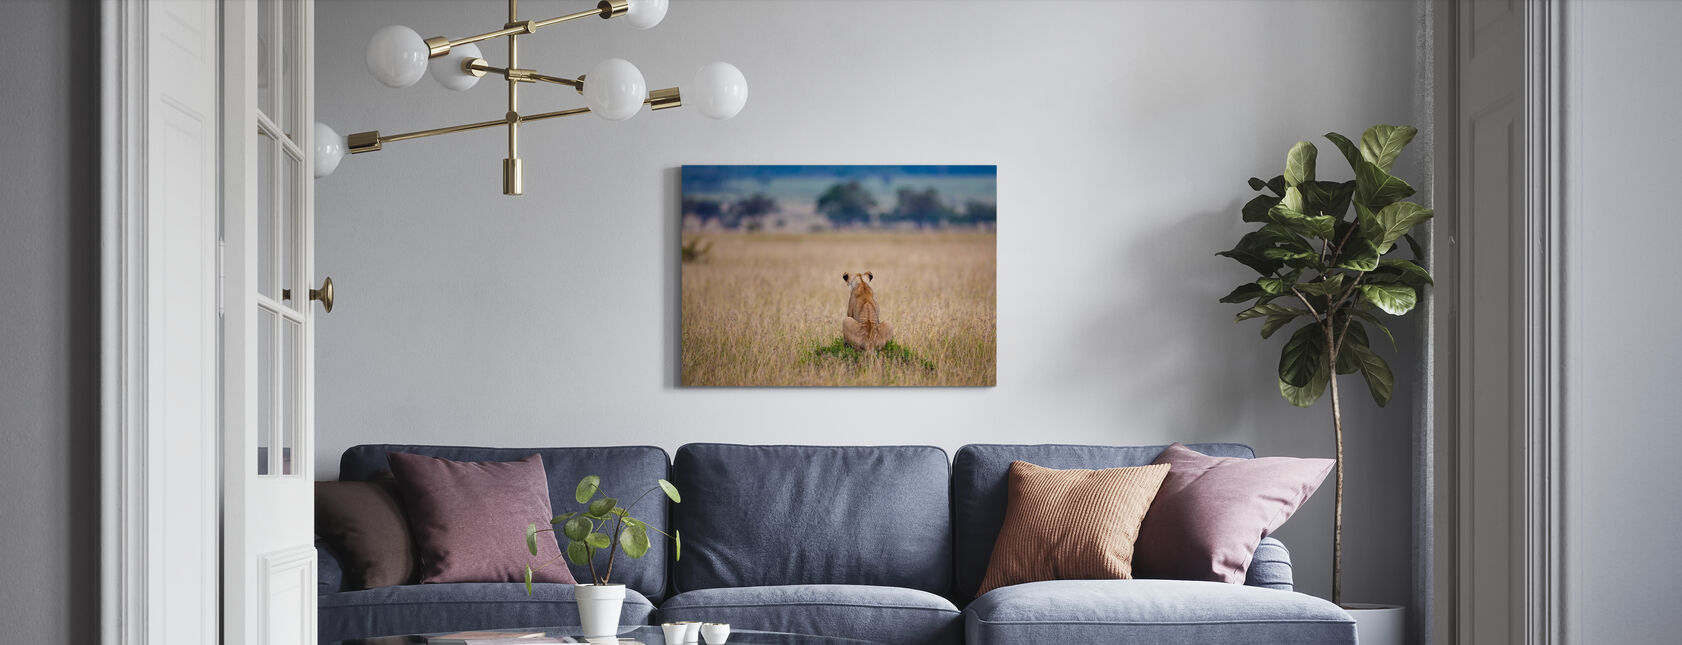 Lost in Thought - Canvas print - Living Room